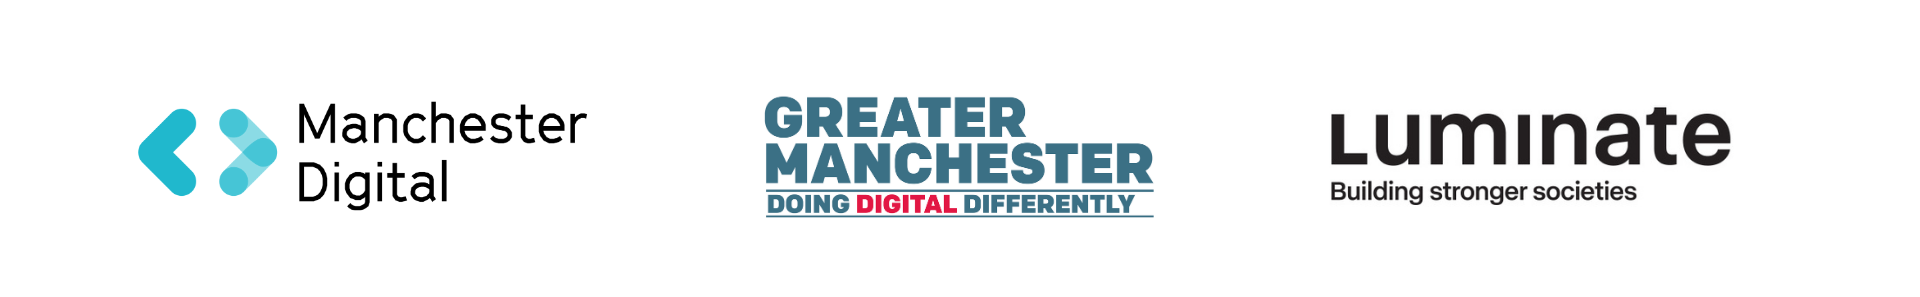 Manchester Digital, GMCA and Luminate logos